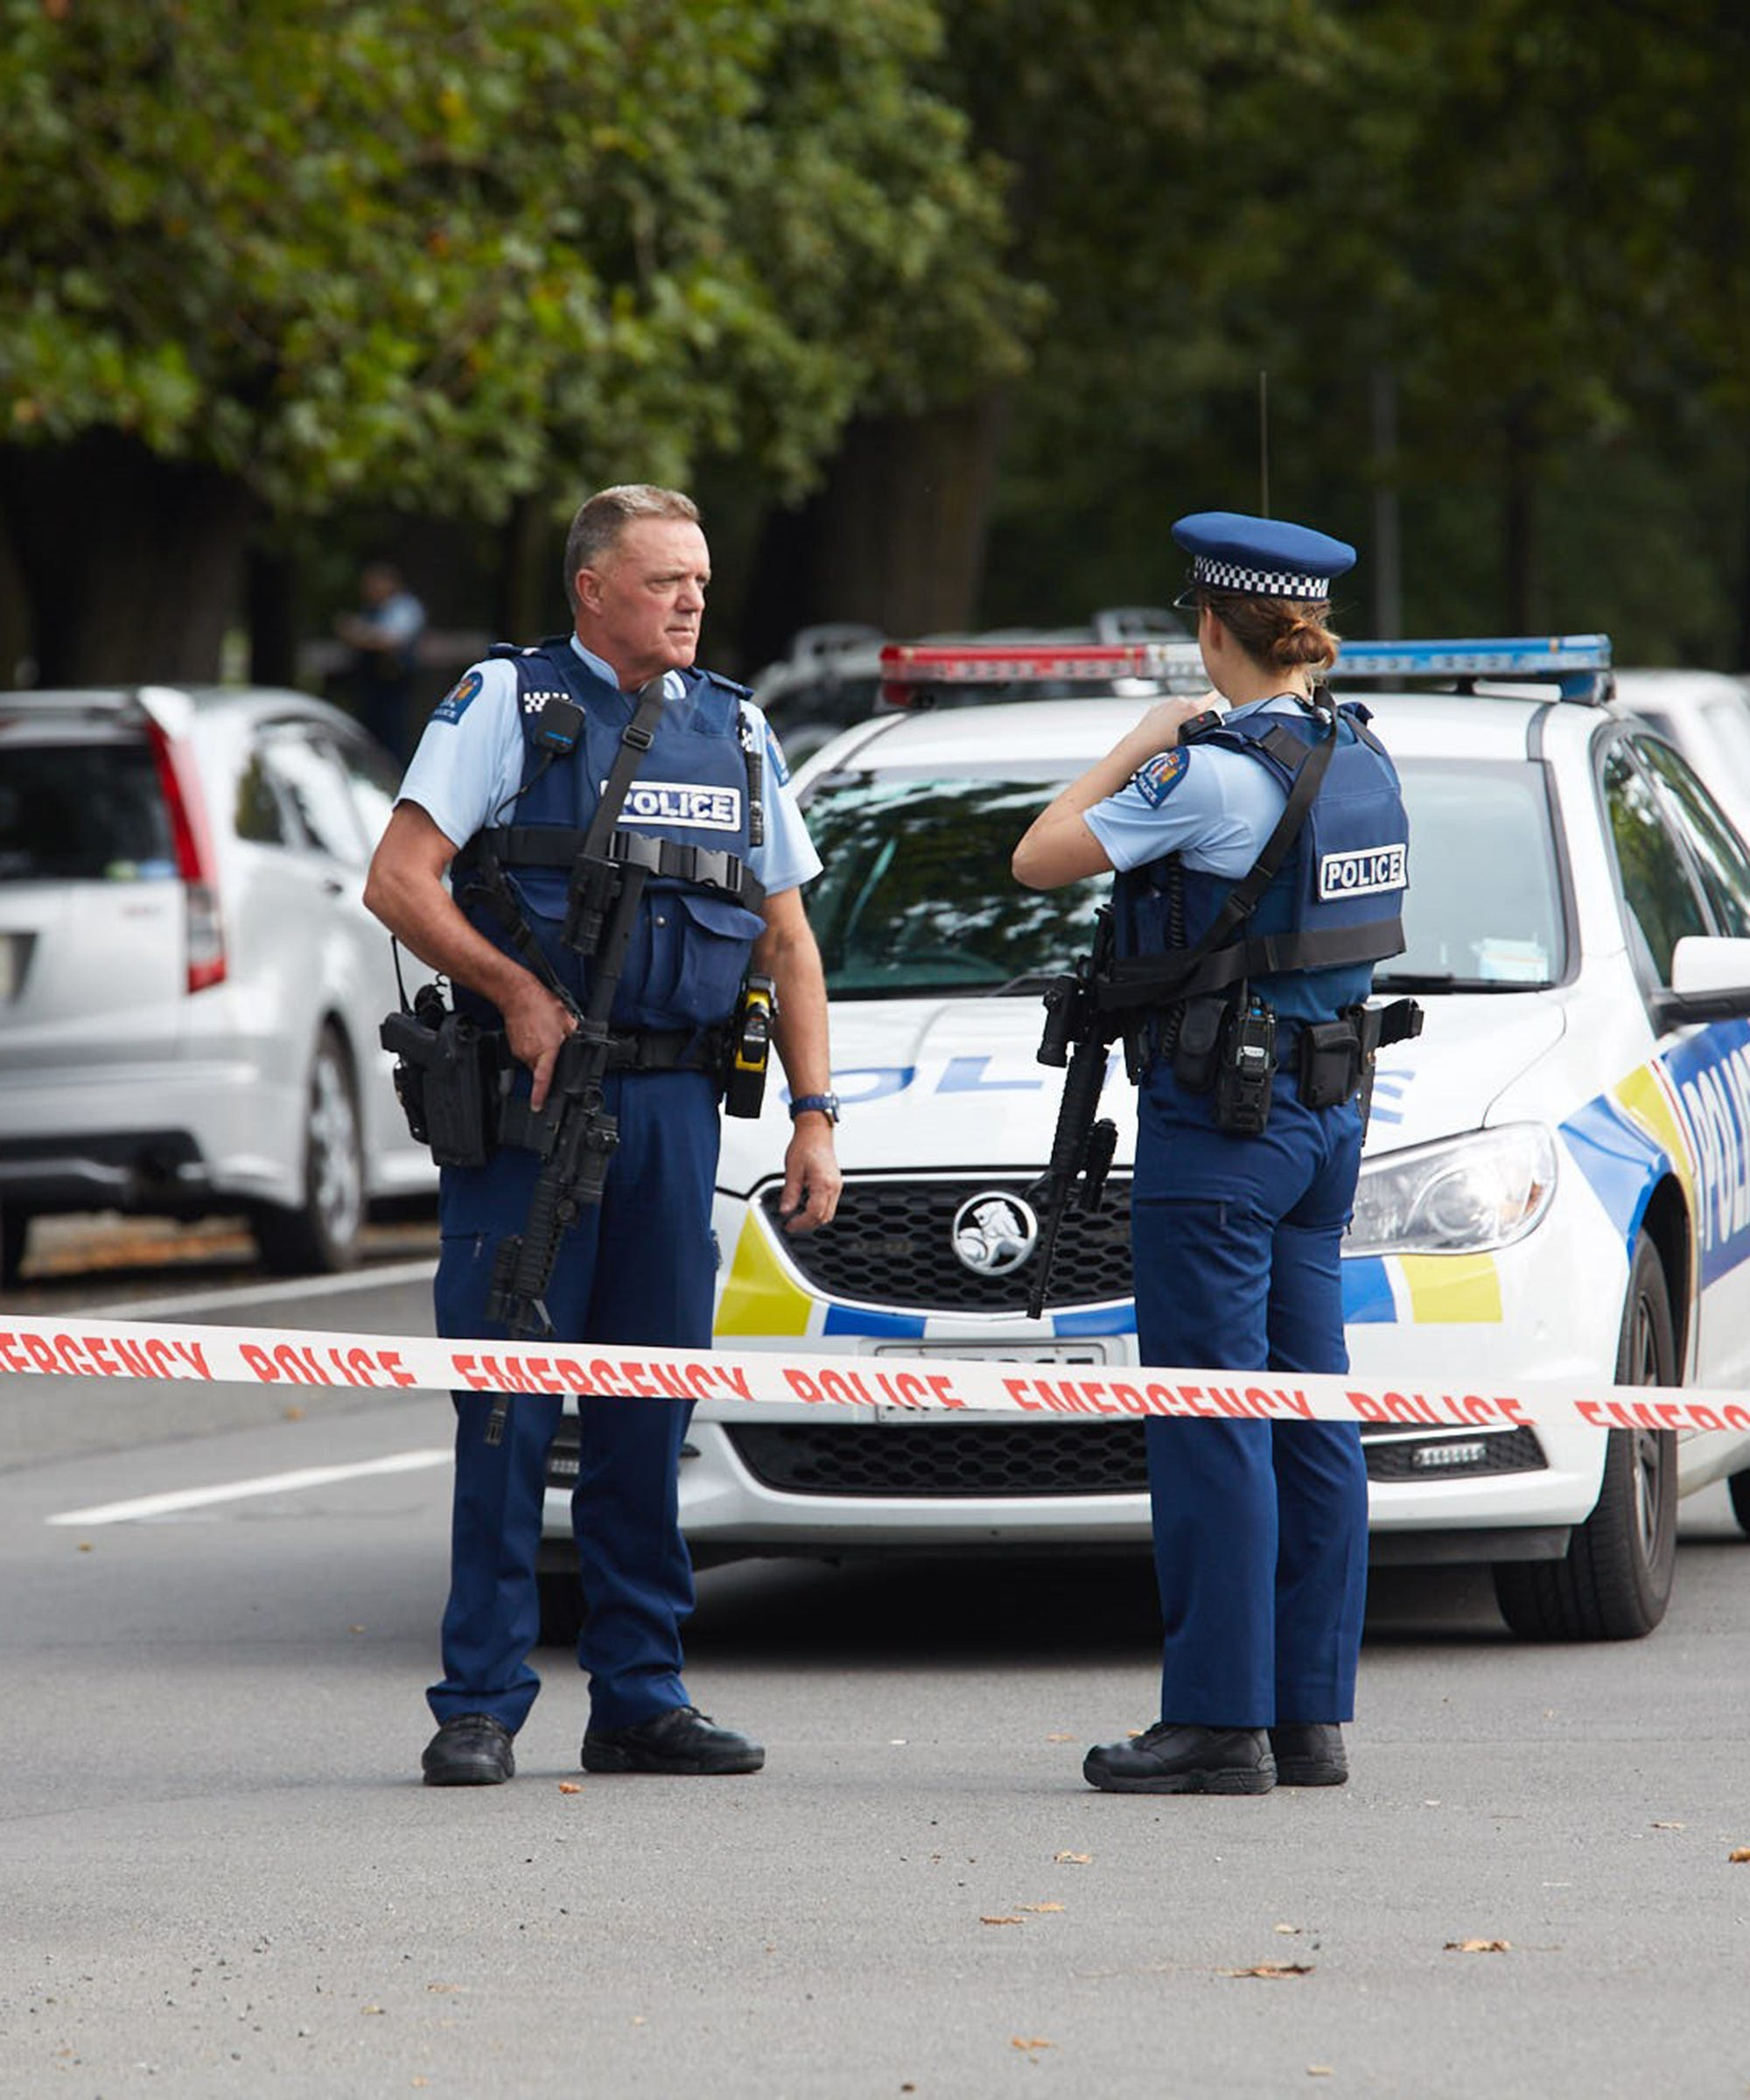 New Zealand's Gun Laws In Question After Terror Attack